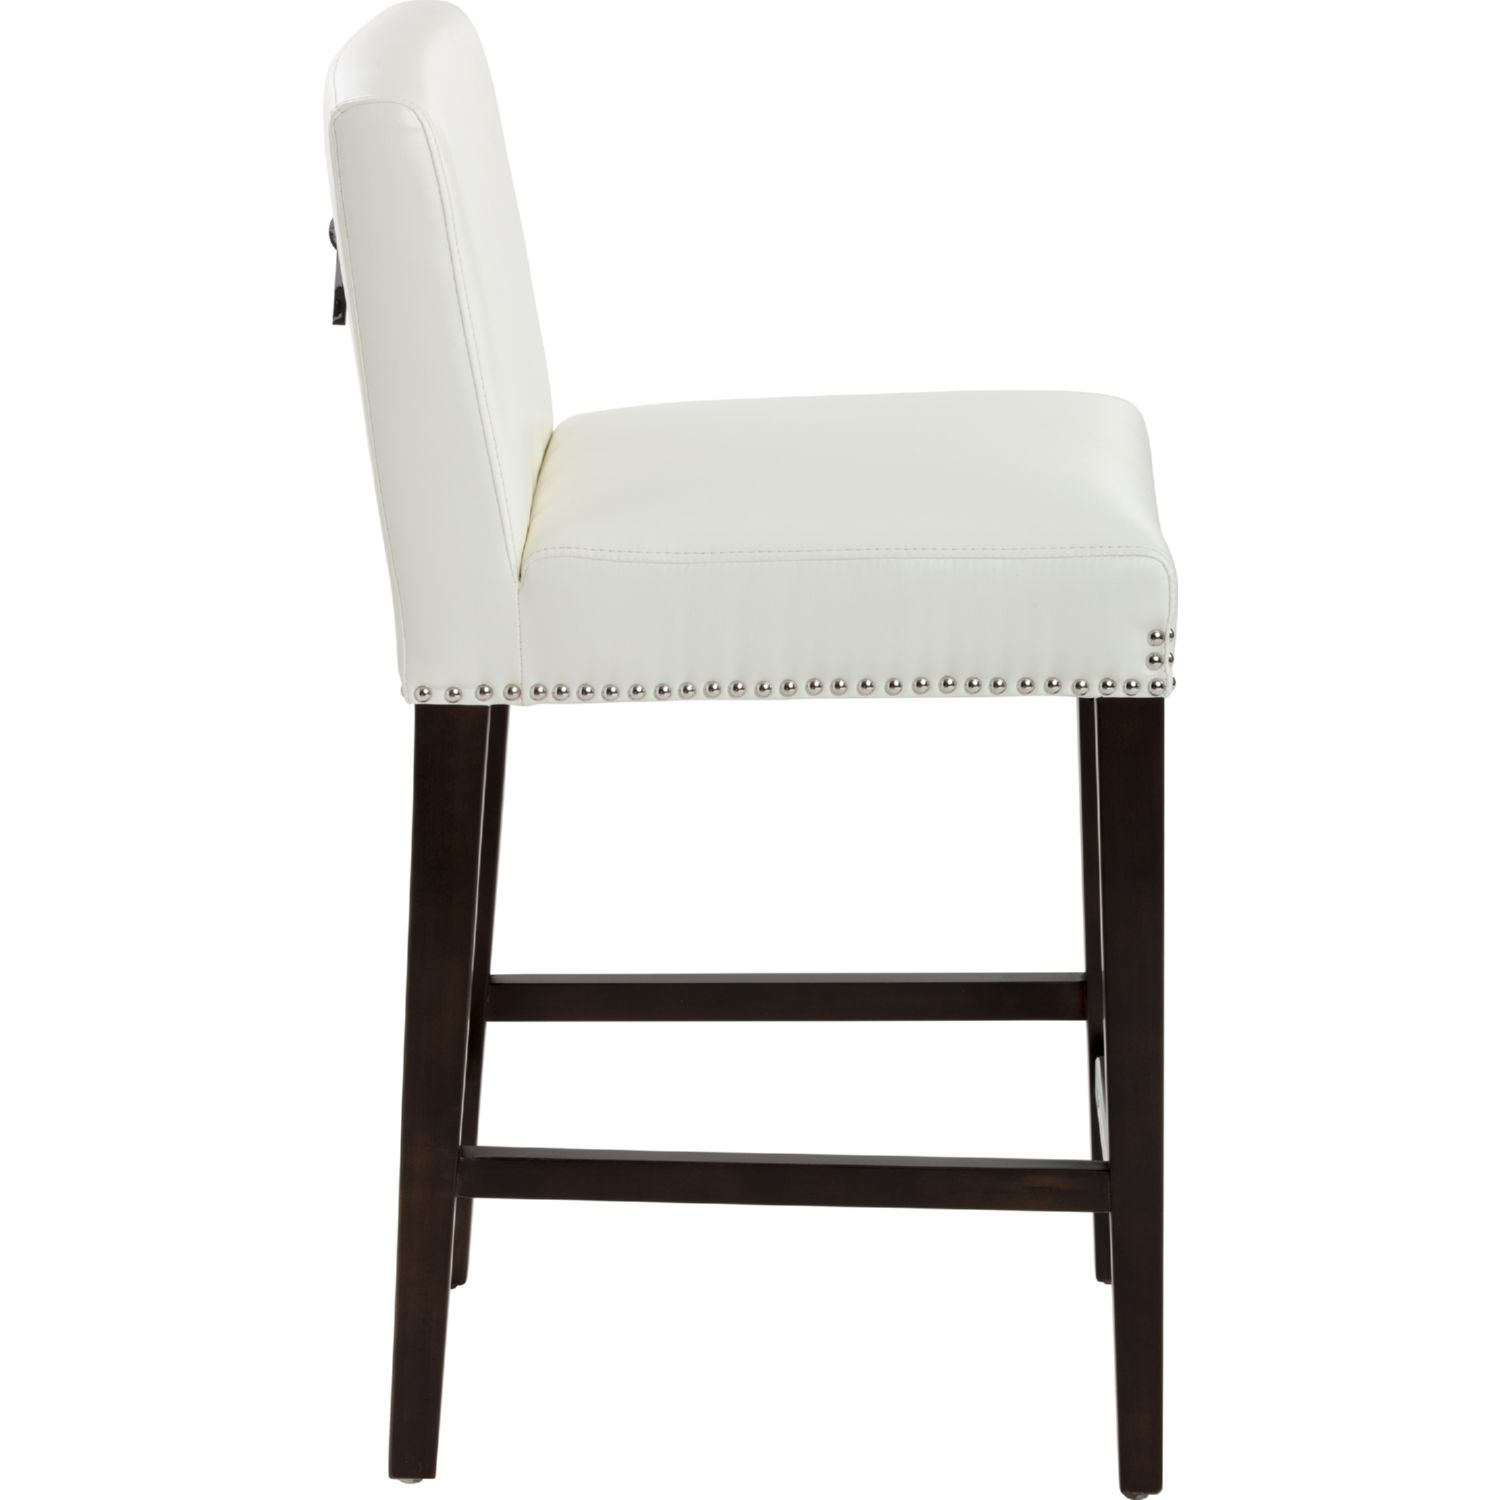 Sunpan 38406 Brooke Counter Height Stool In Ivory Leather